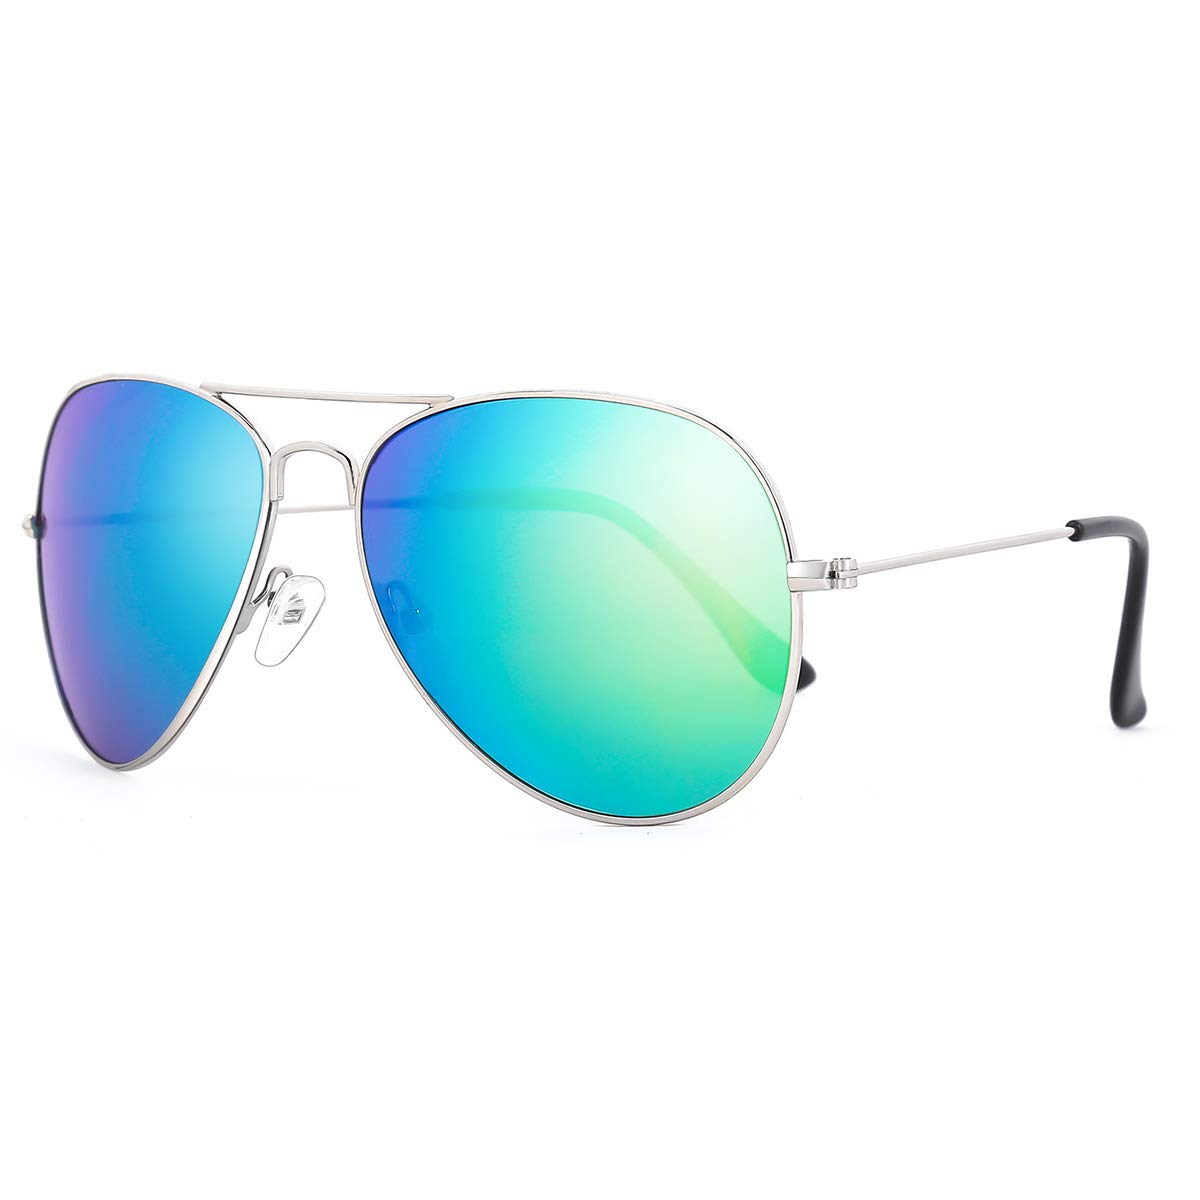 ROLF ROSSINI Kids Aviator Sunglasses Polarized for Boys and Girls with Case UV 400 Protection 50MM (Silver, Green)